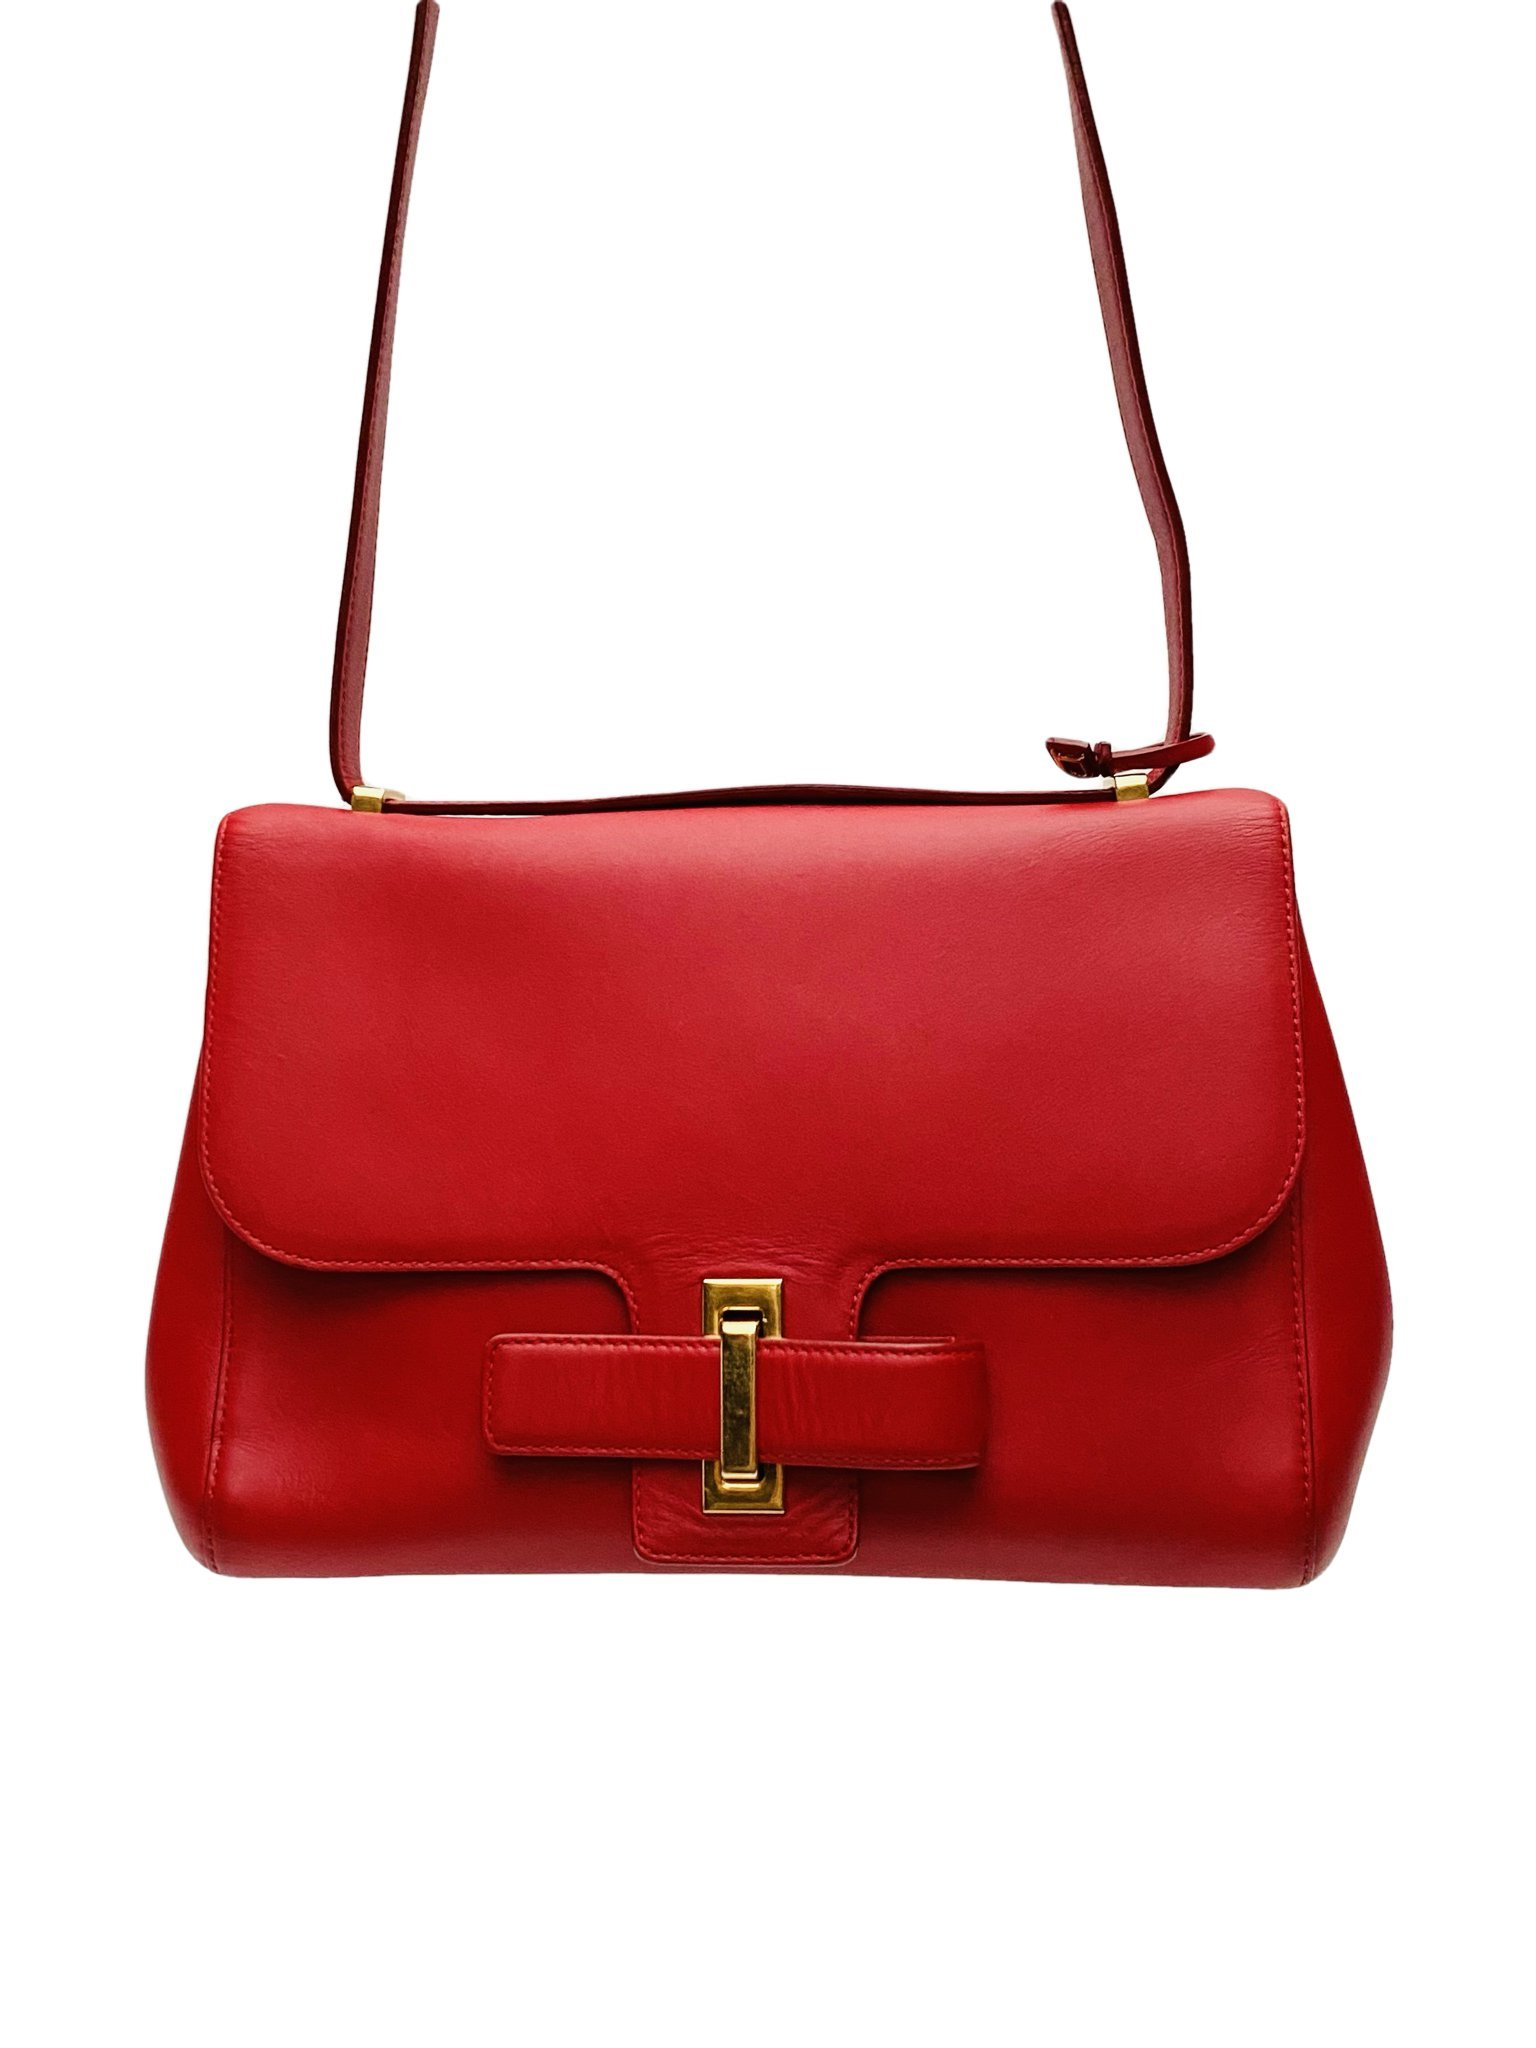 delvaux-simplissime-rood